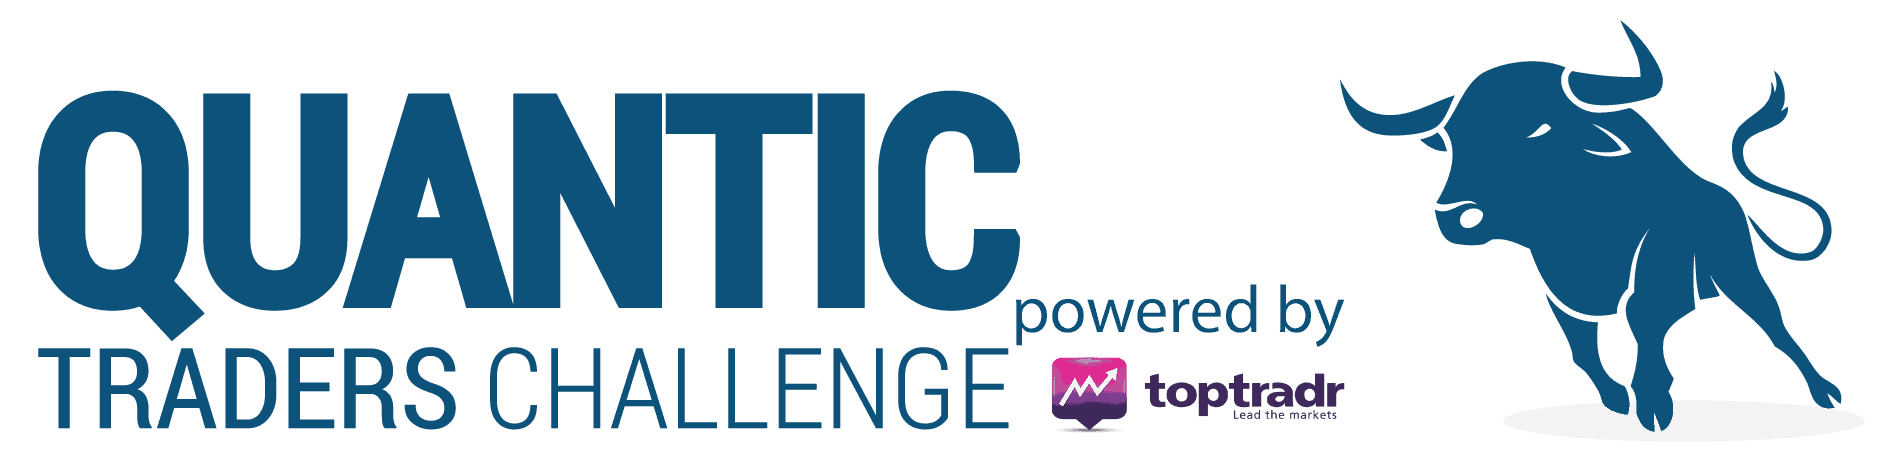 Quantic Traders Challenge - fund manager competition